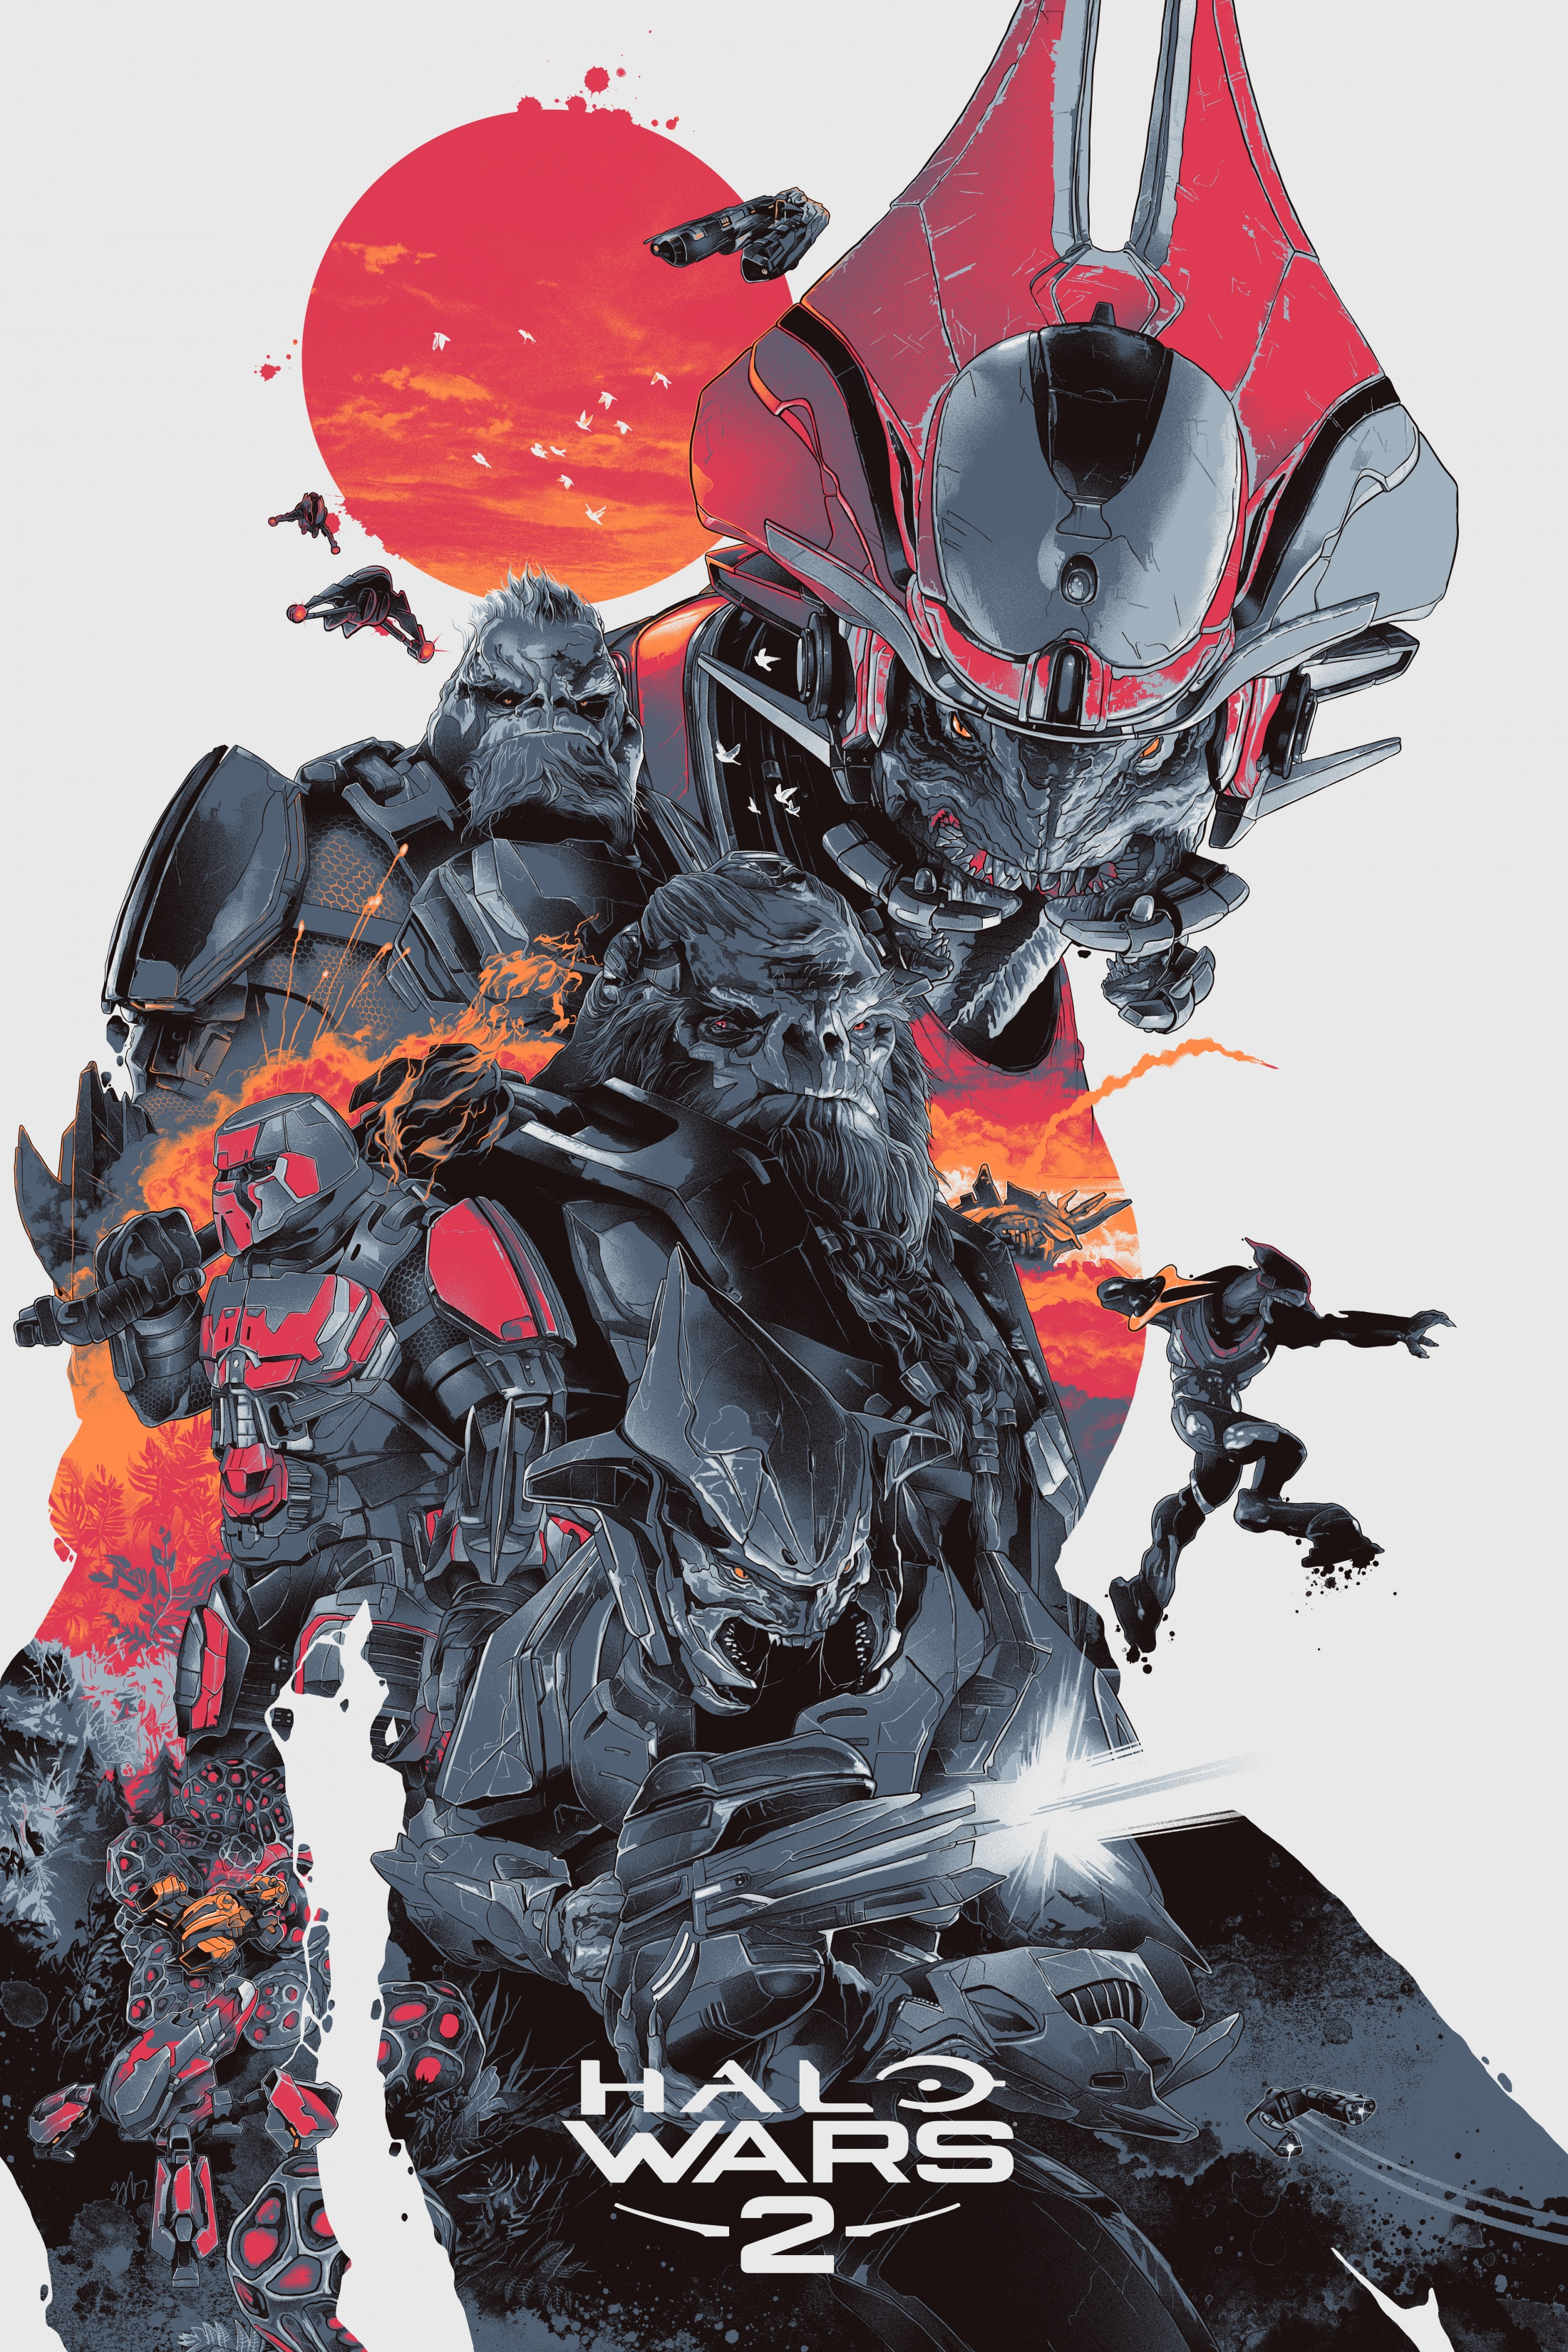 Image Media for Halo Wars 2 Art Series- Shipmaster